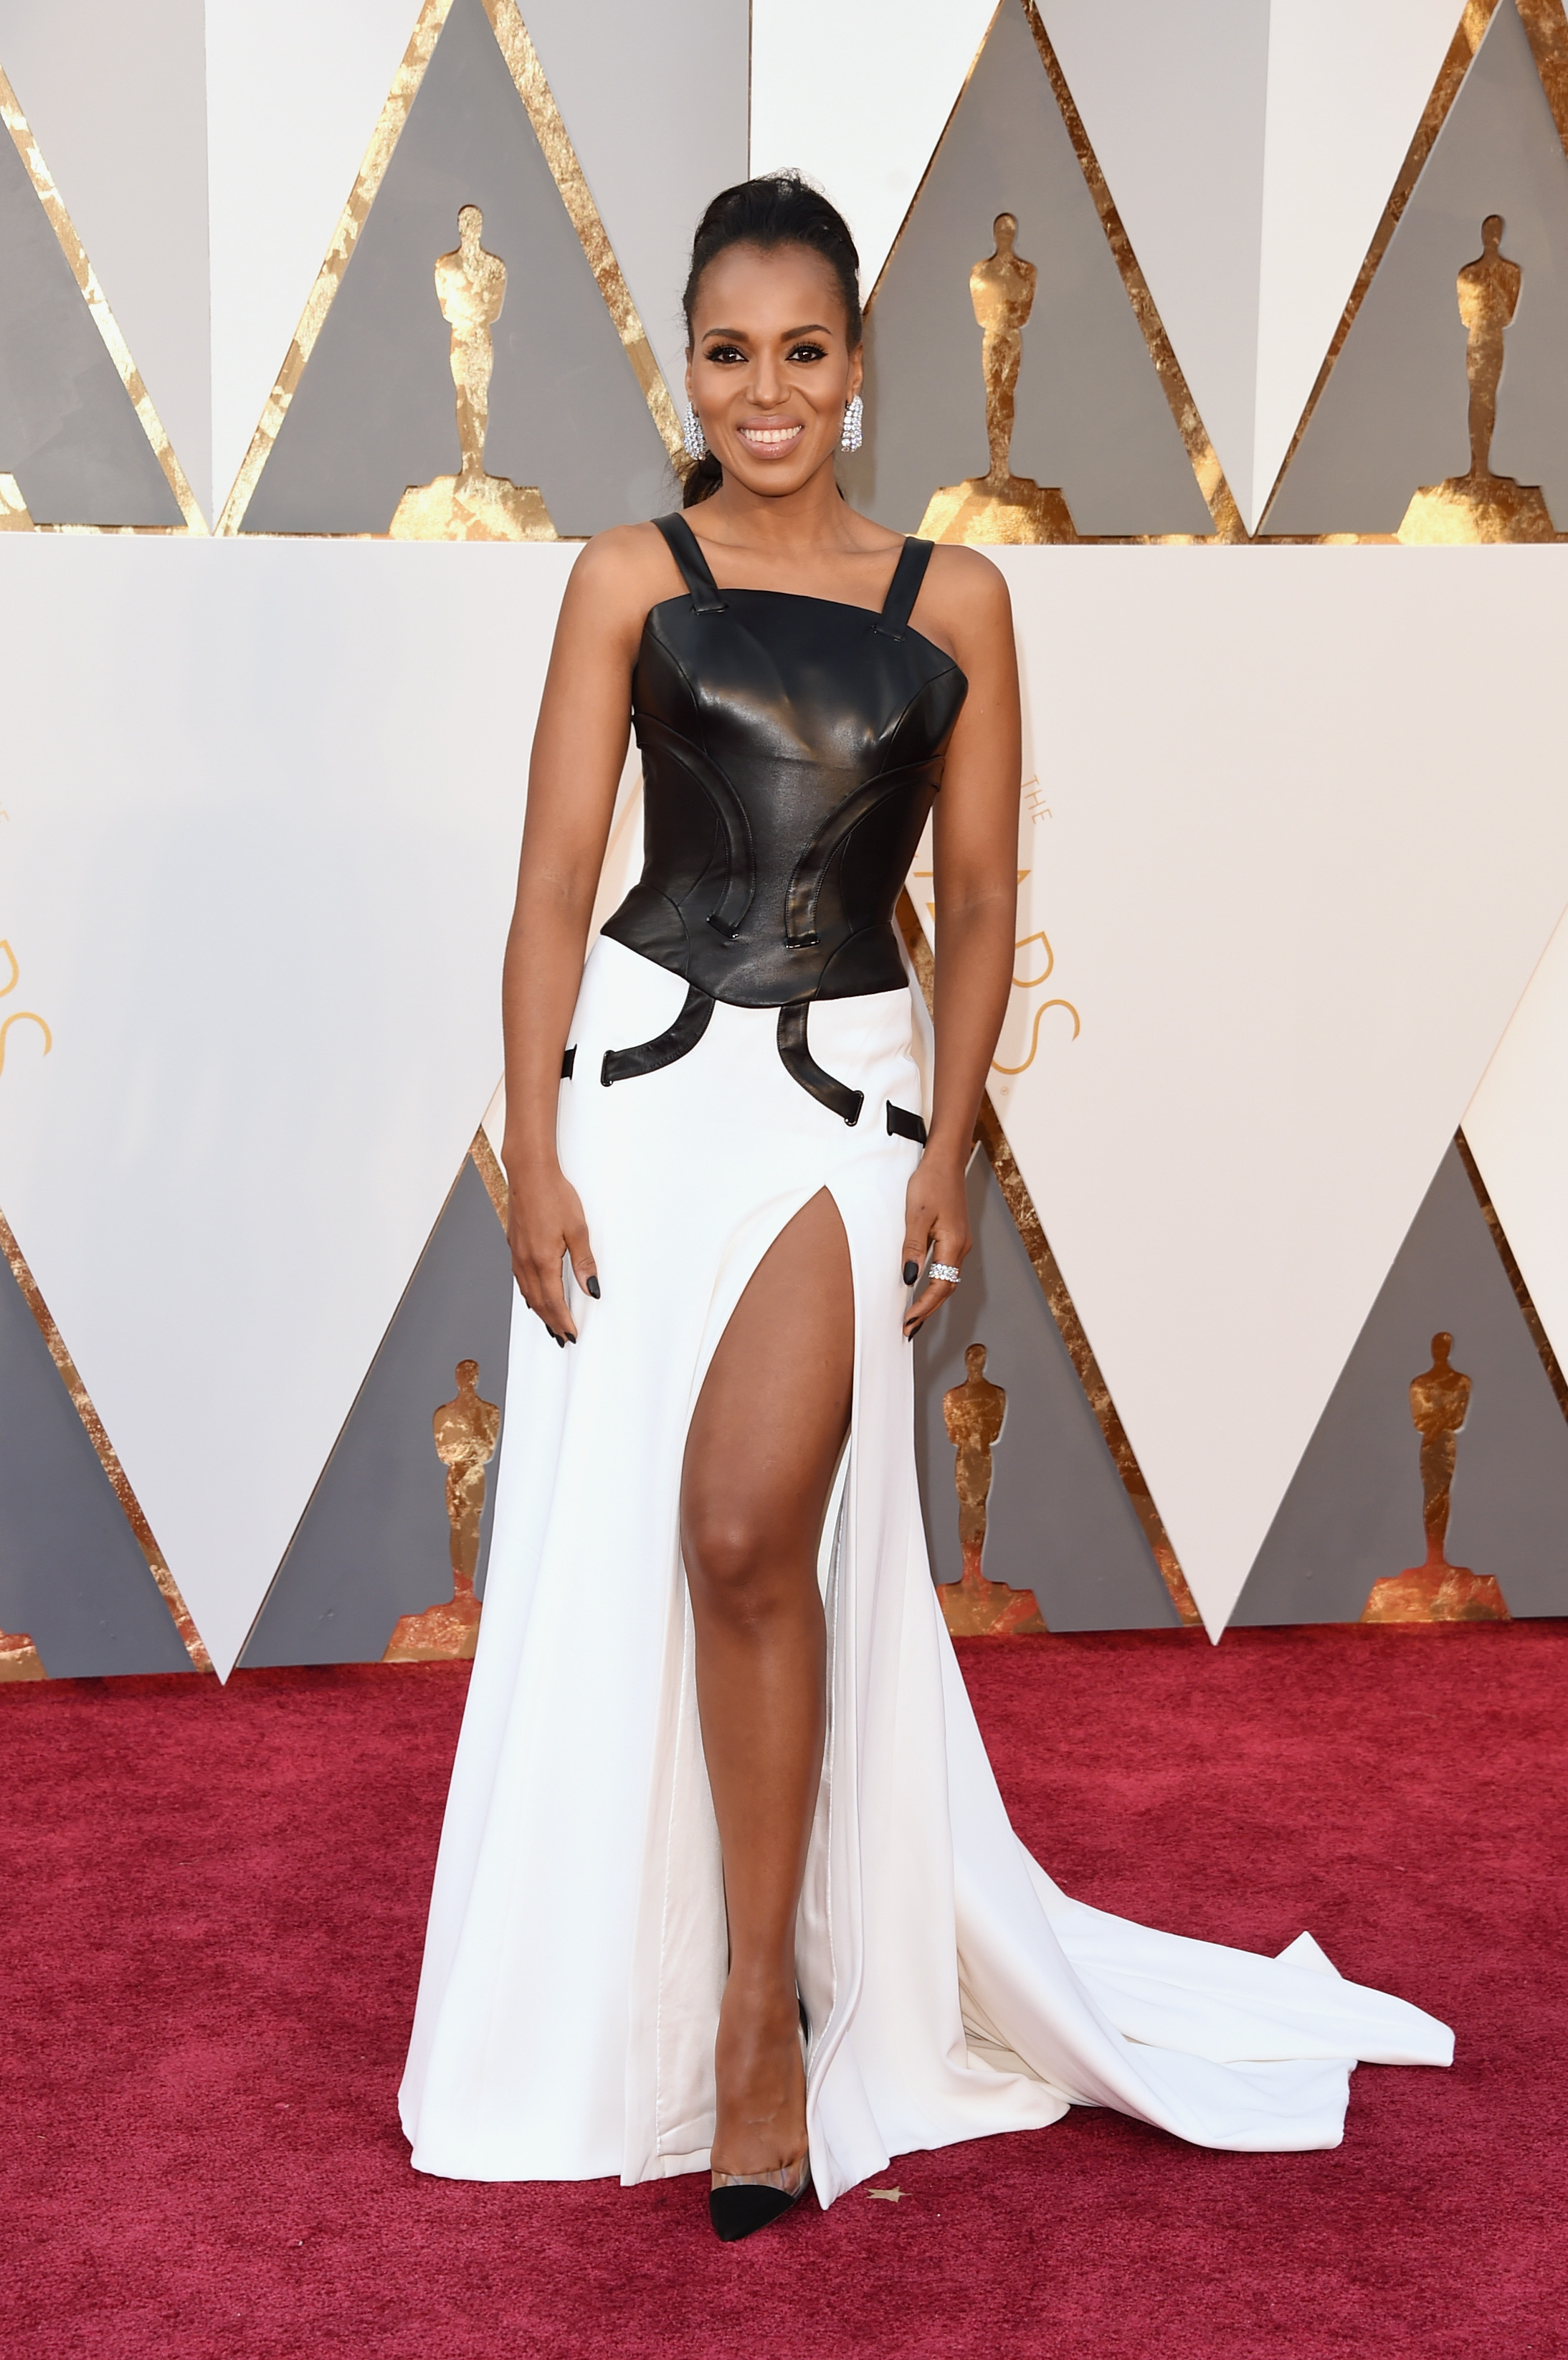 Kerry Washington attends the 88th Annual Academy Awards on Feb. 28, 2016 in Hollywood, Calif.